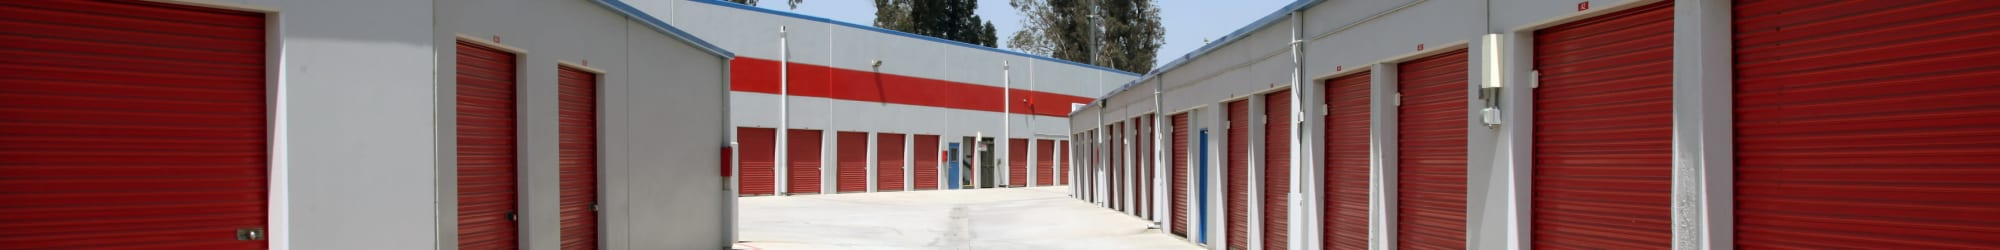 Self storage features at Trojan Storage in Colton, California, California